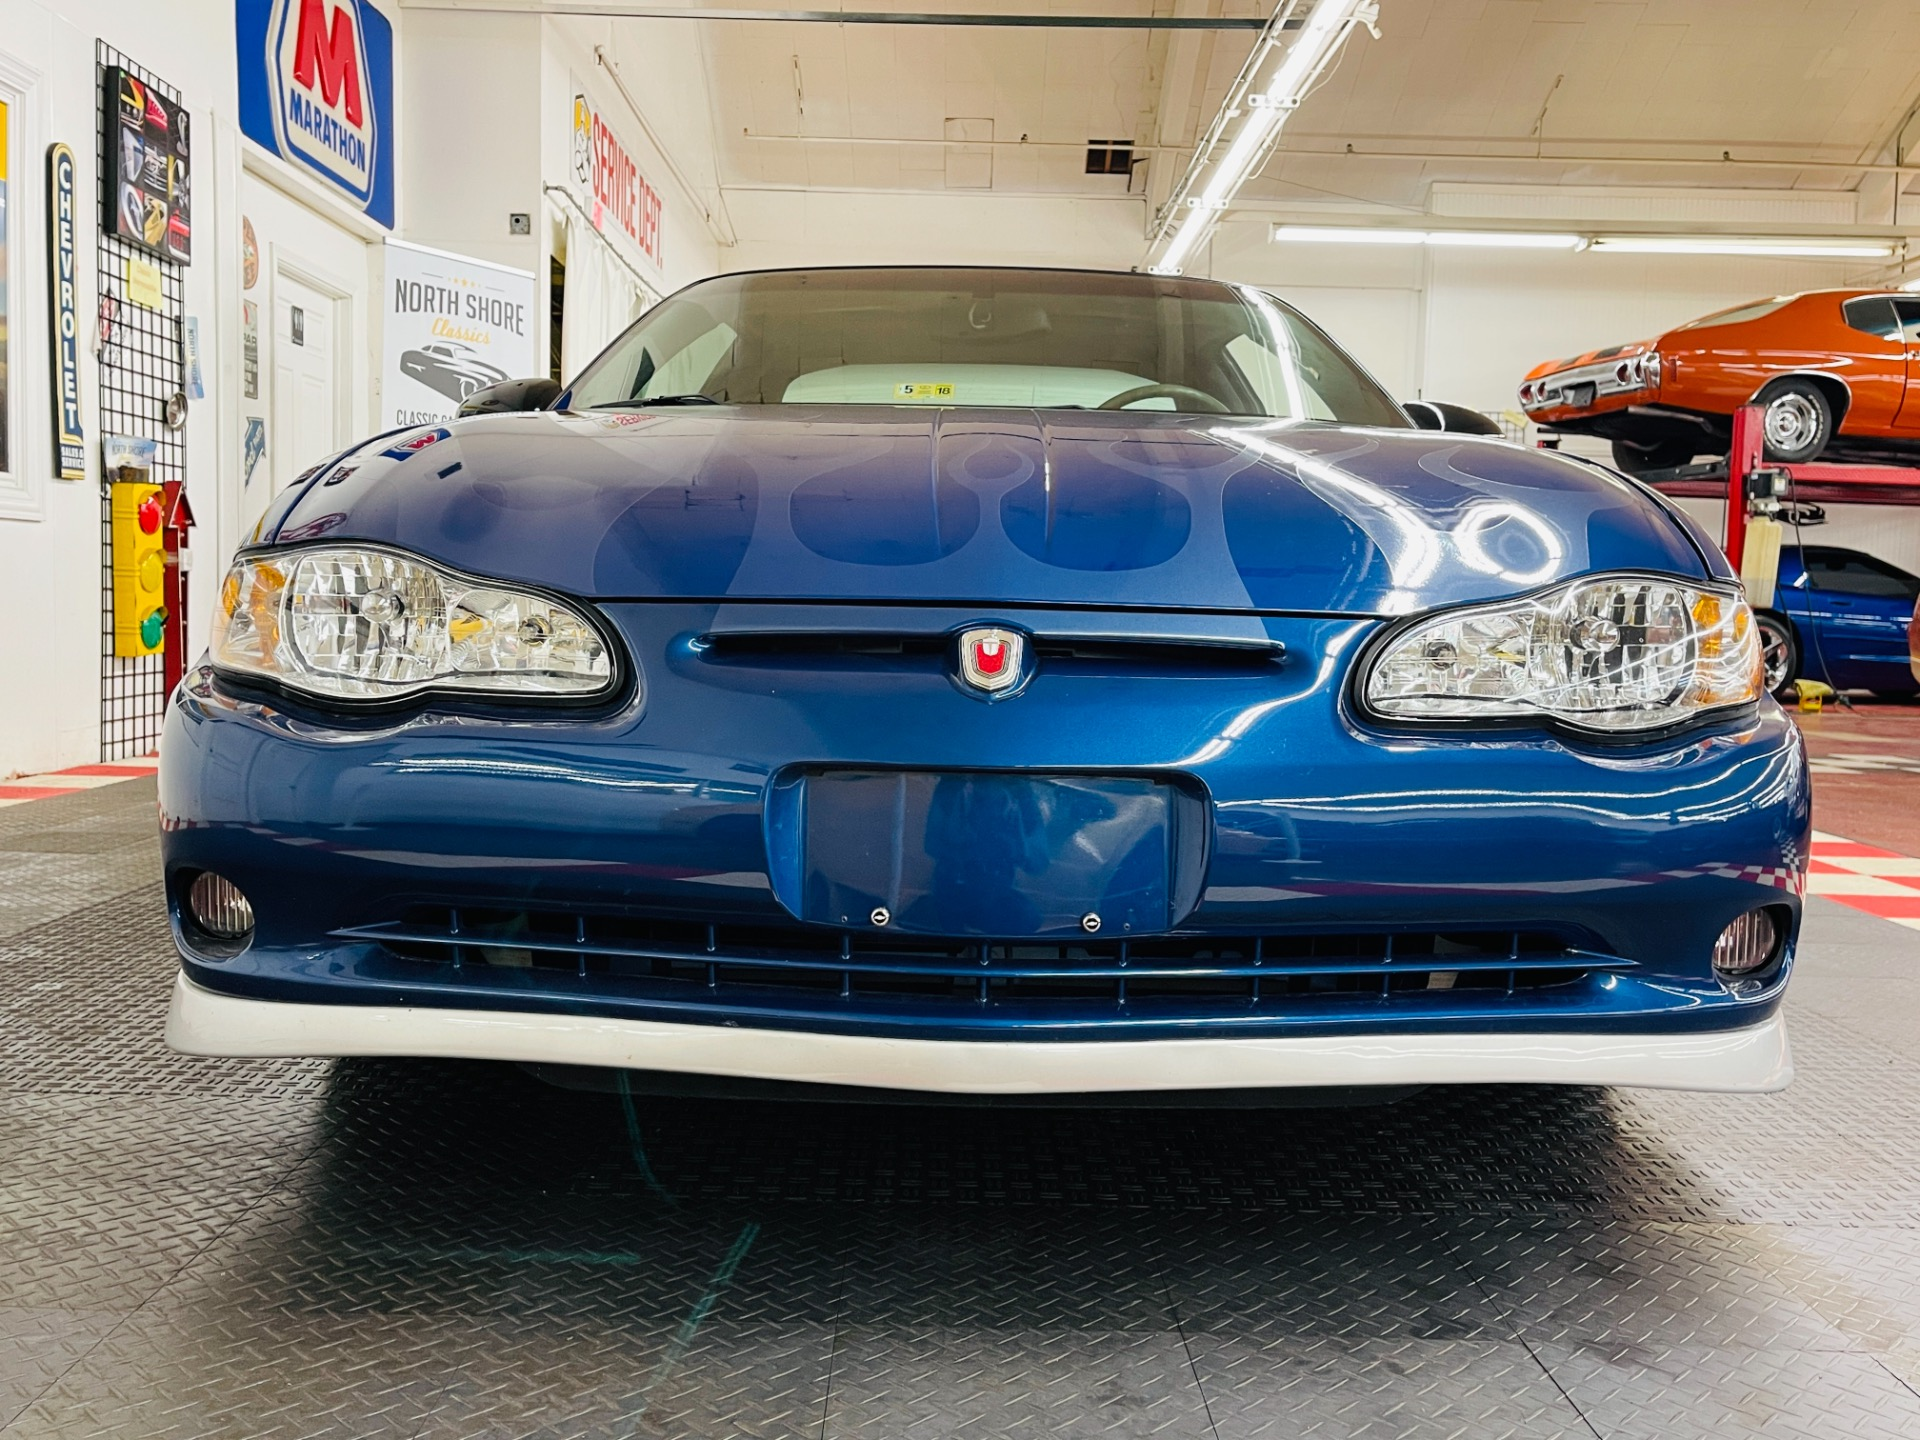 Used 2003 Chevrolet Monte Carlo - SUPER SPORT - JEFF GORDON EDITION - LOW MILES - SEE VIDEO | Mundelein, IL